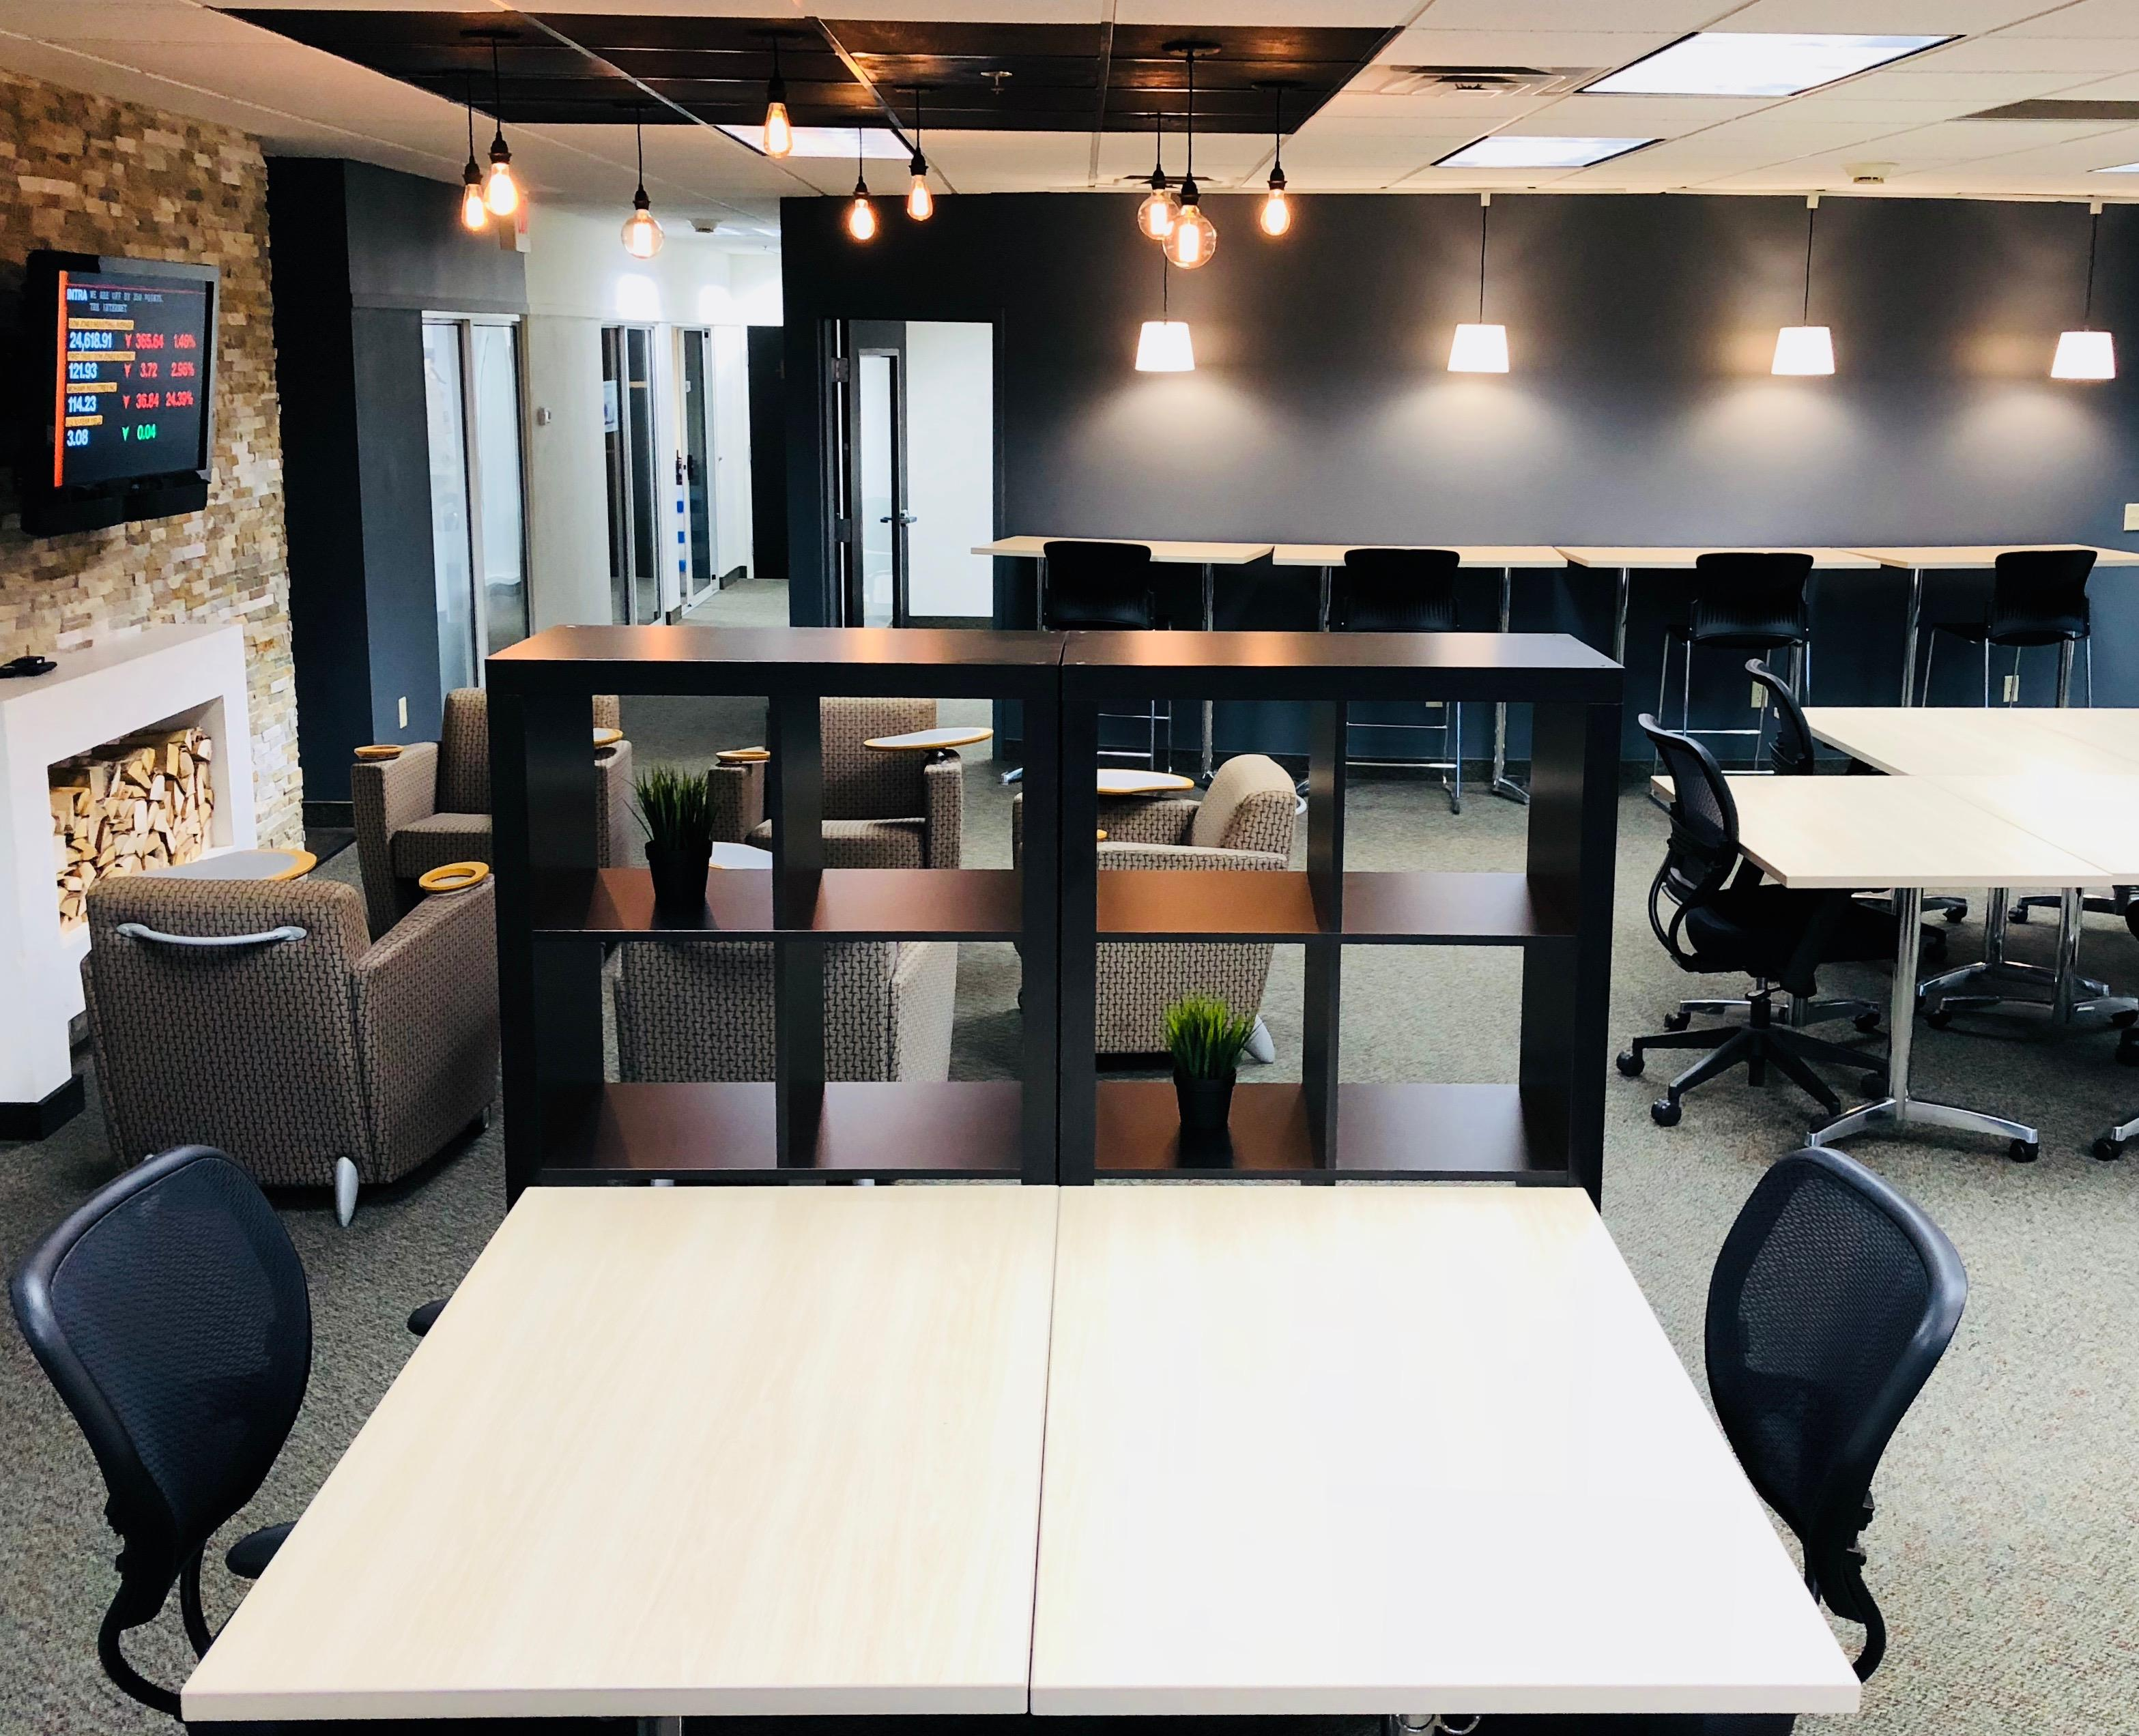 Filament Workplace - Open Desk Coworking Space